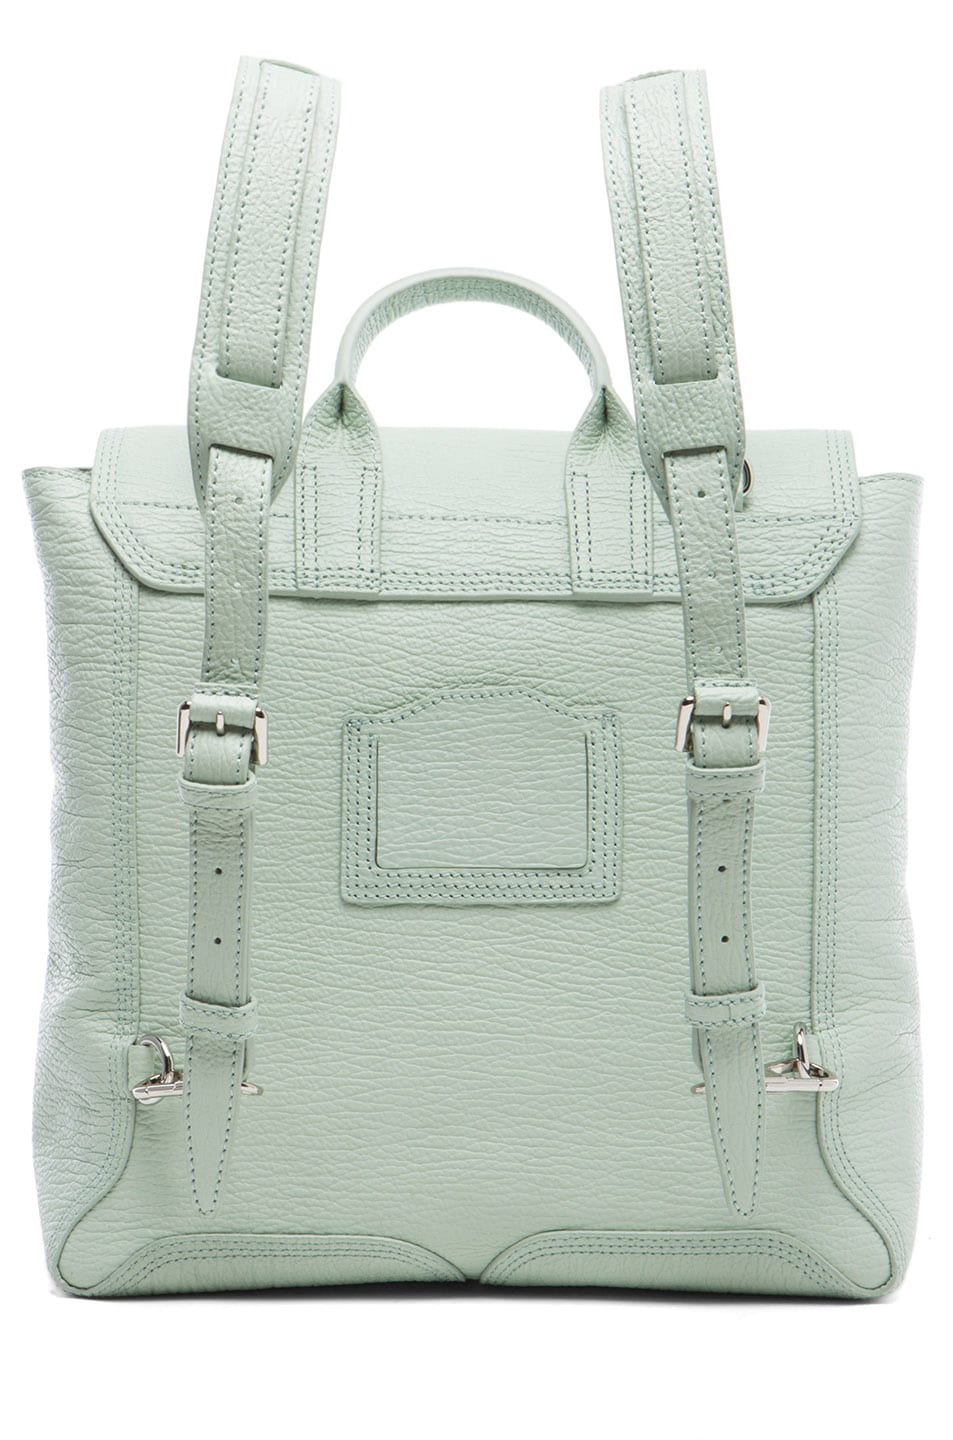 Image 2 of 3.1 phillip lim Pashli Backpack in Sage